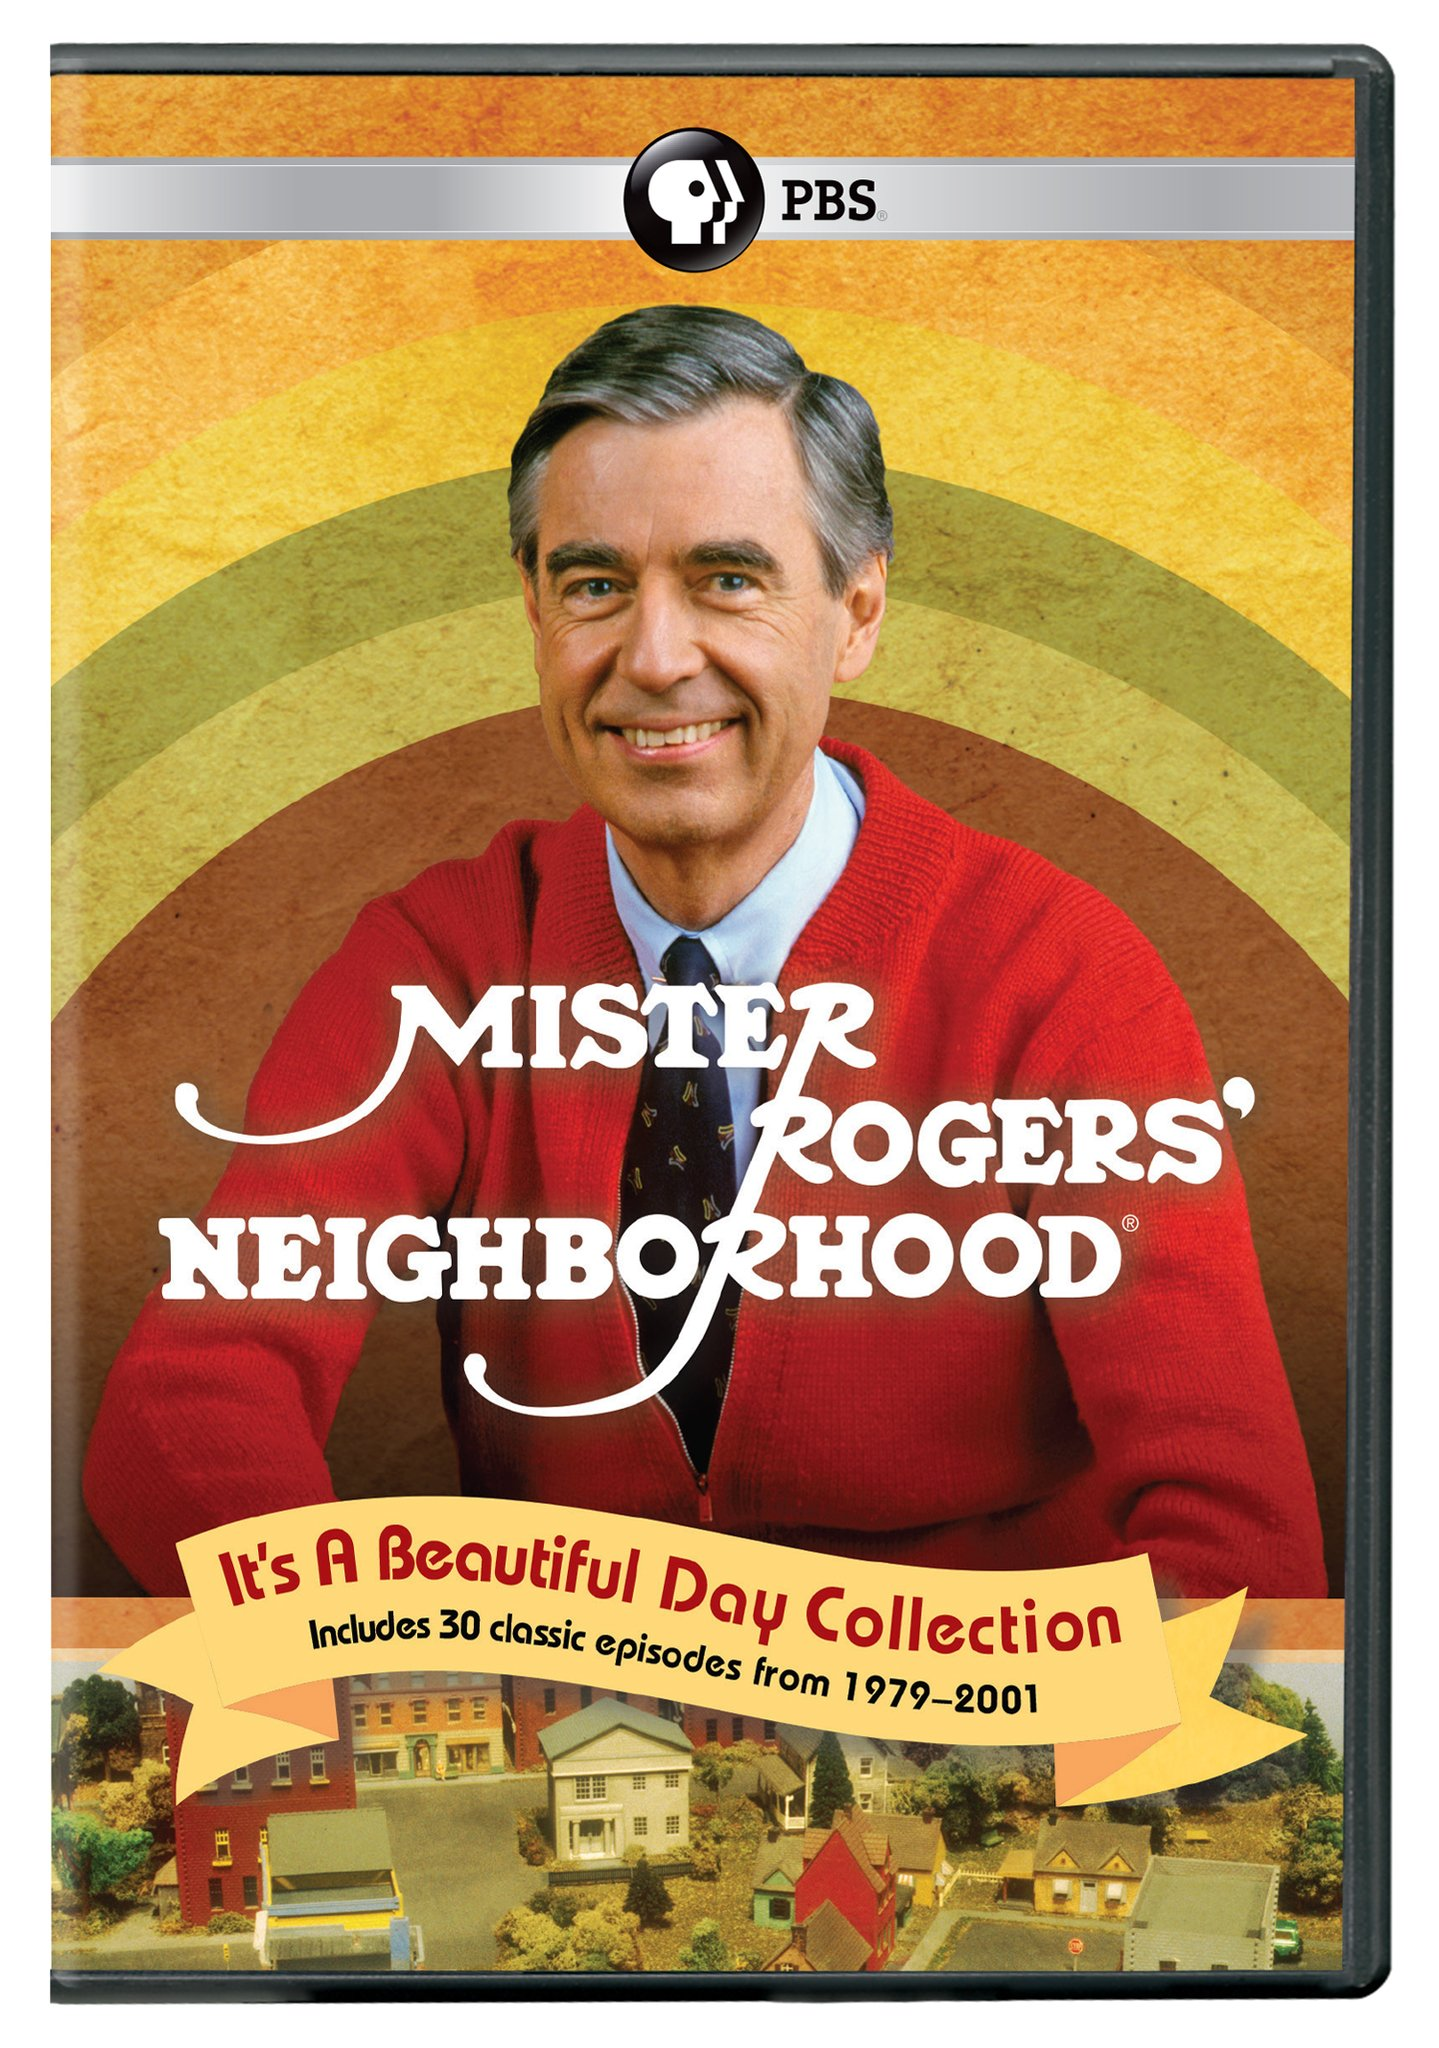 DVD : Mister Rogers' Neighborhood: It's A Beautiful Day Collection (Boxed Set, 4PC)